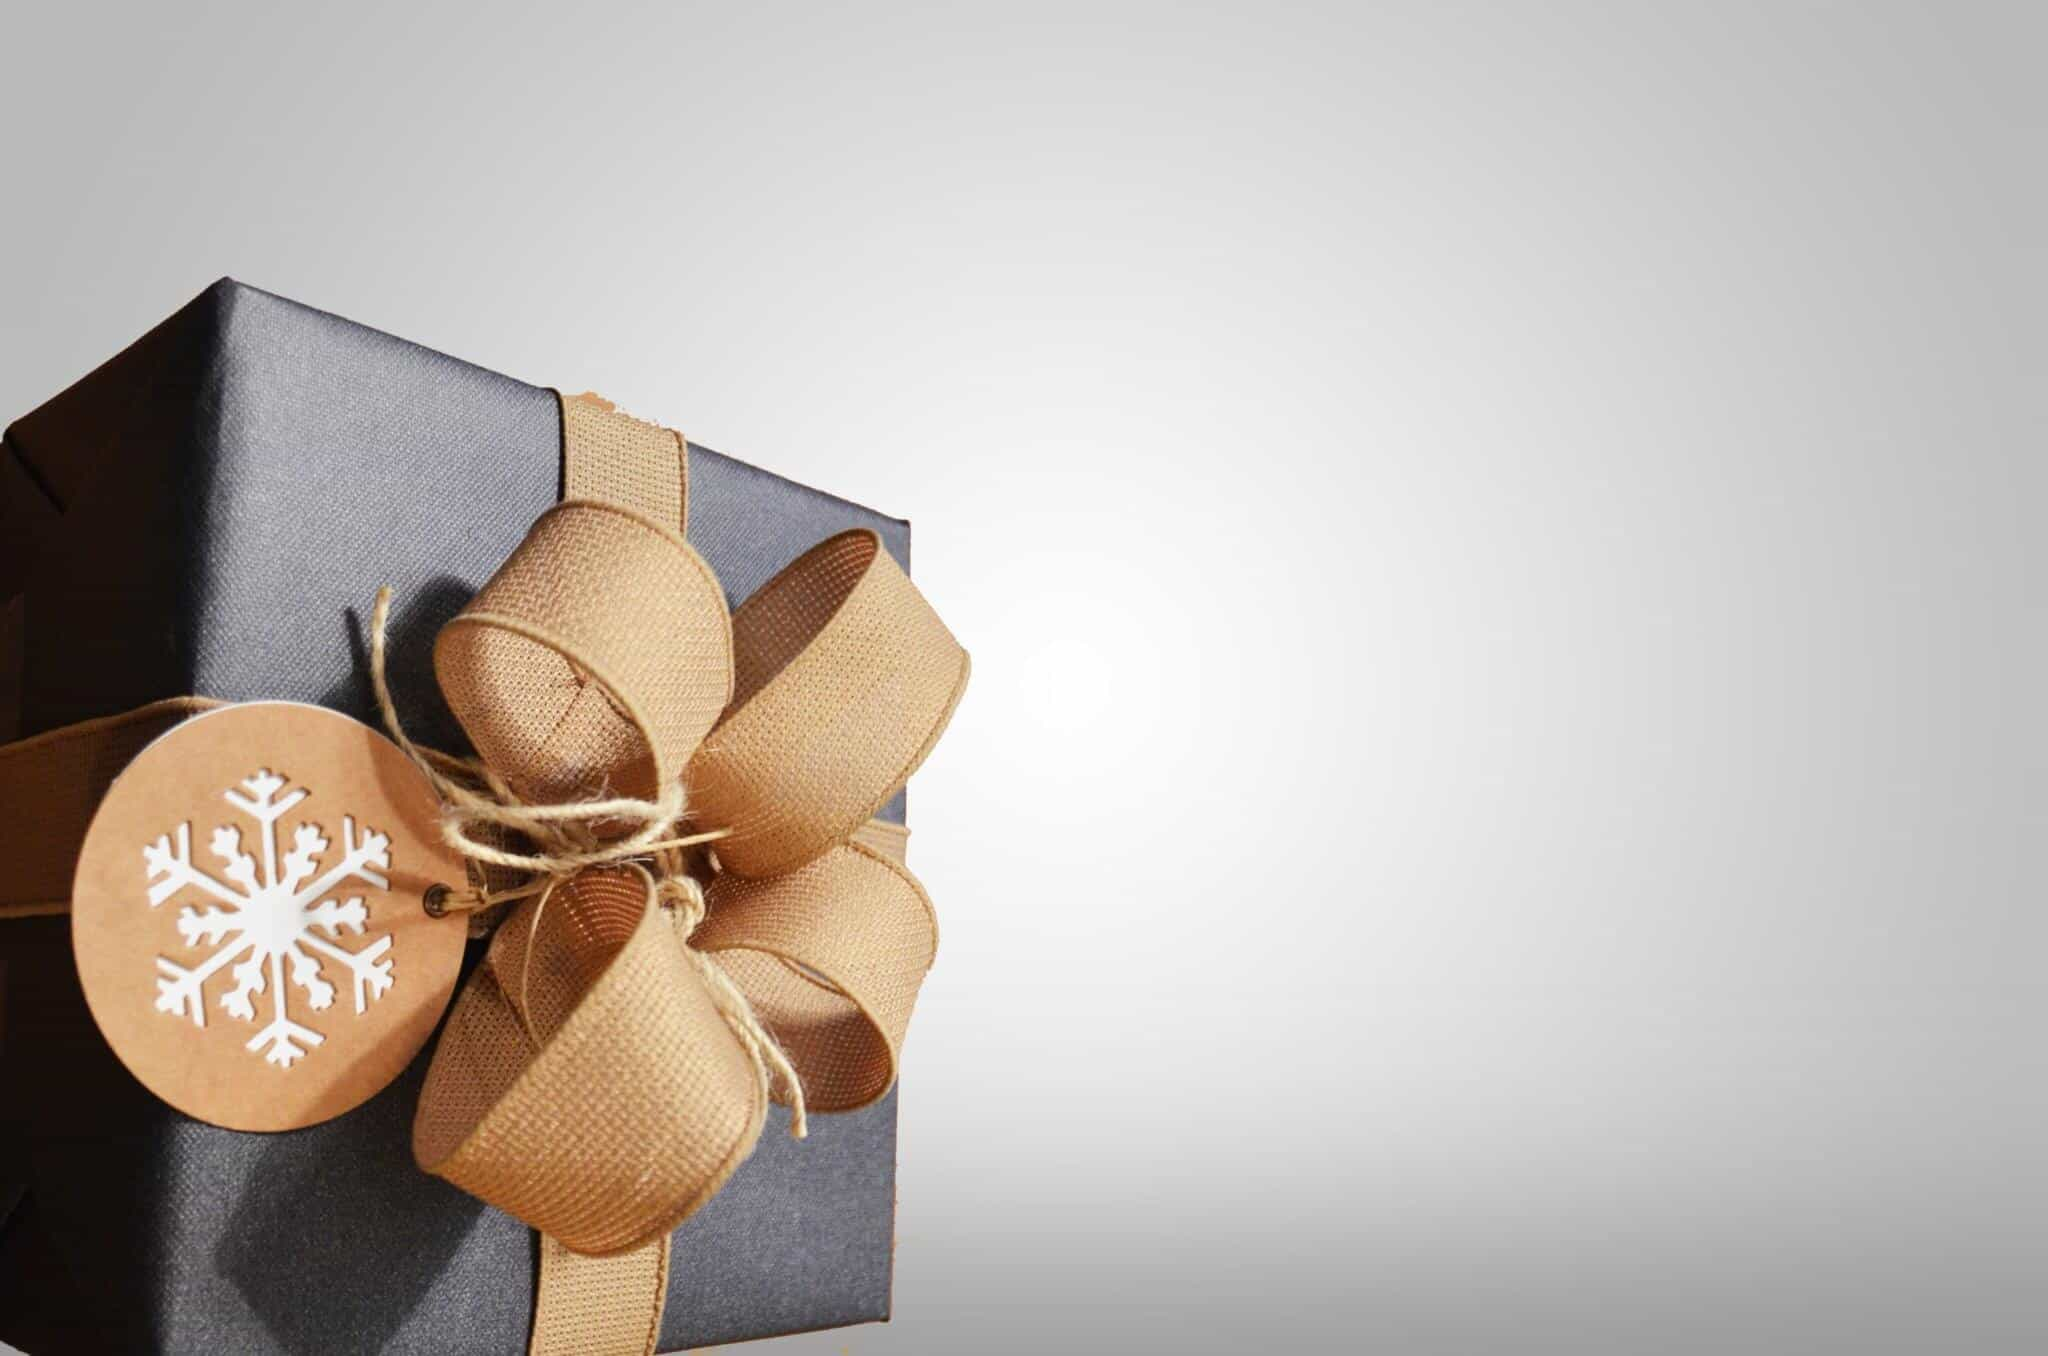 15 Great 10 Gift Ideas For Guys That Will Blow His Mind